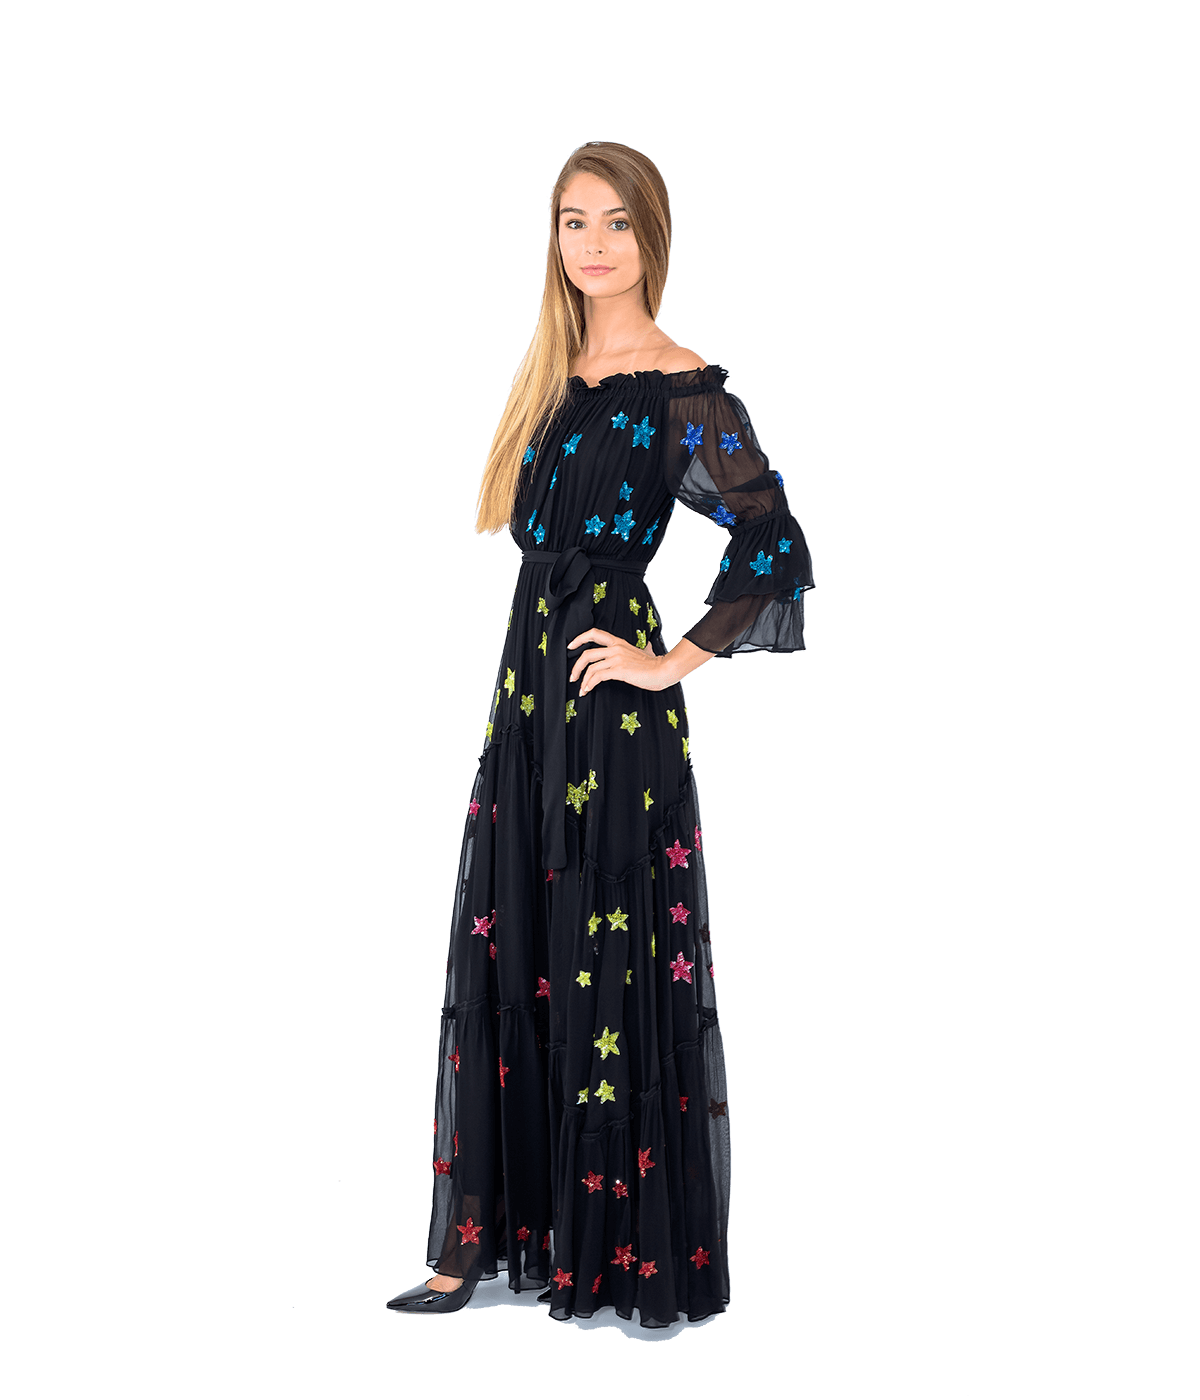 Star Embroidered Maxi Dress - Lady Jetset